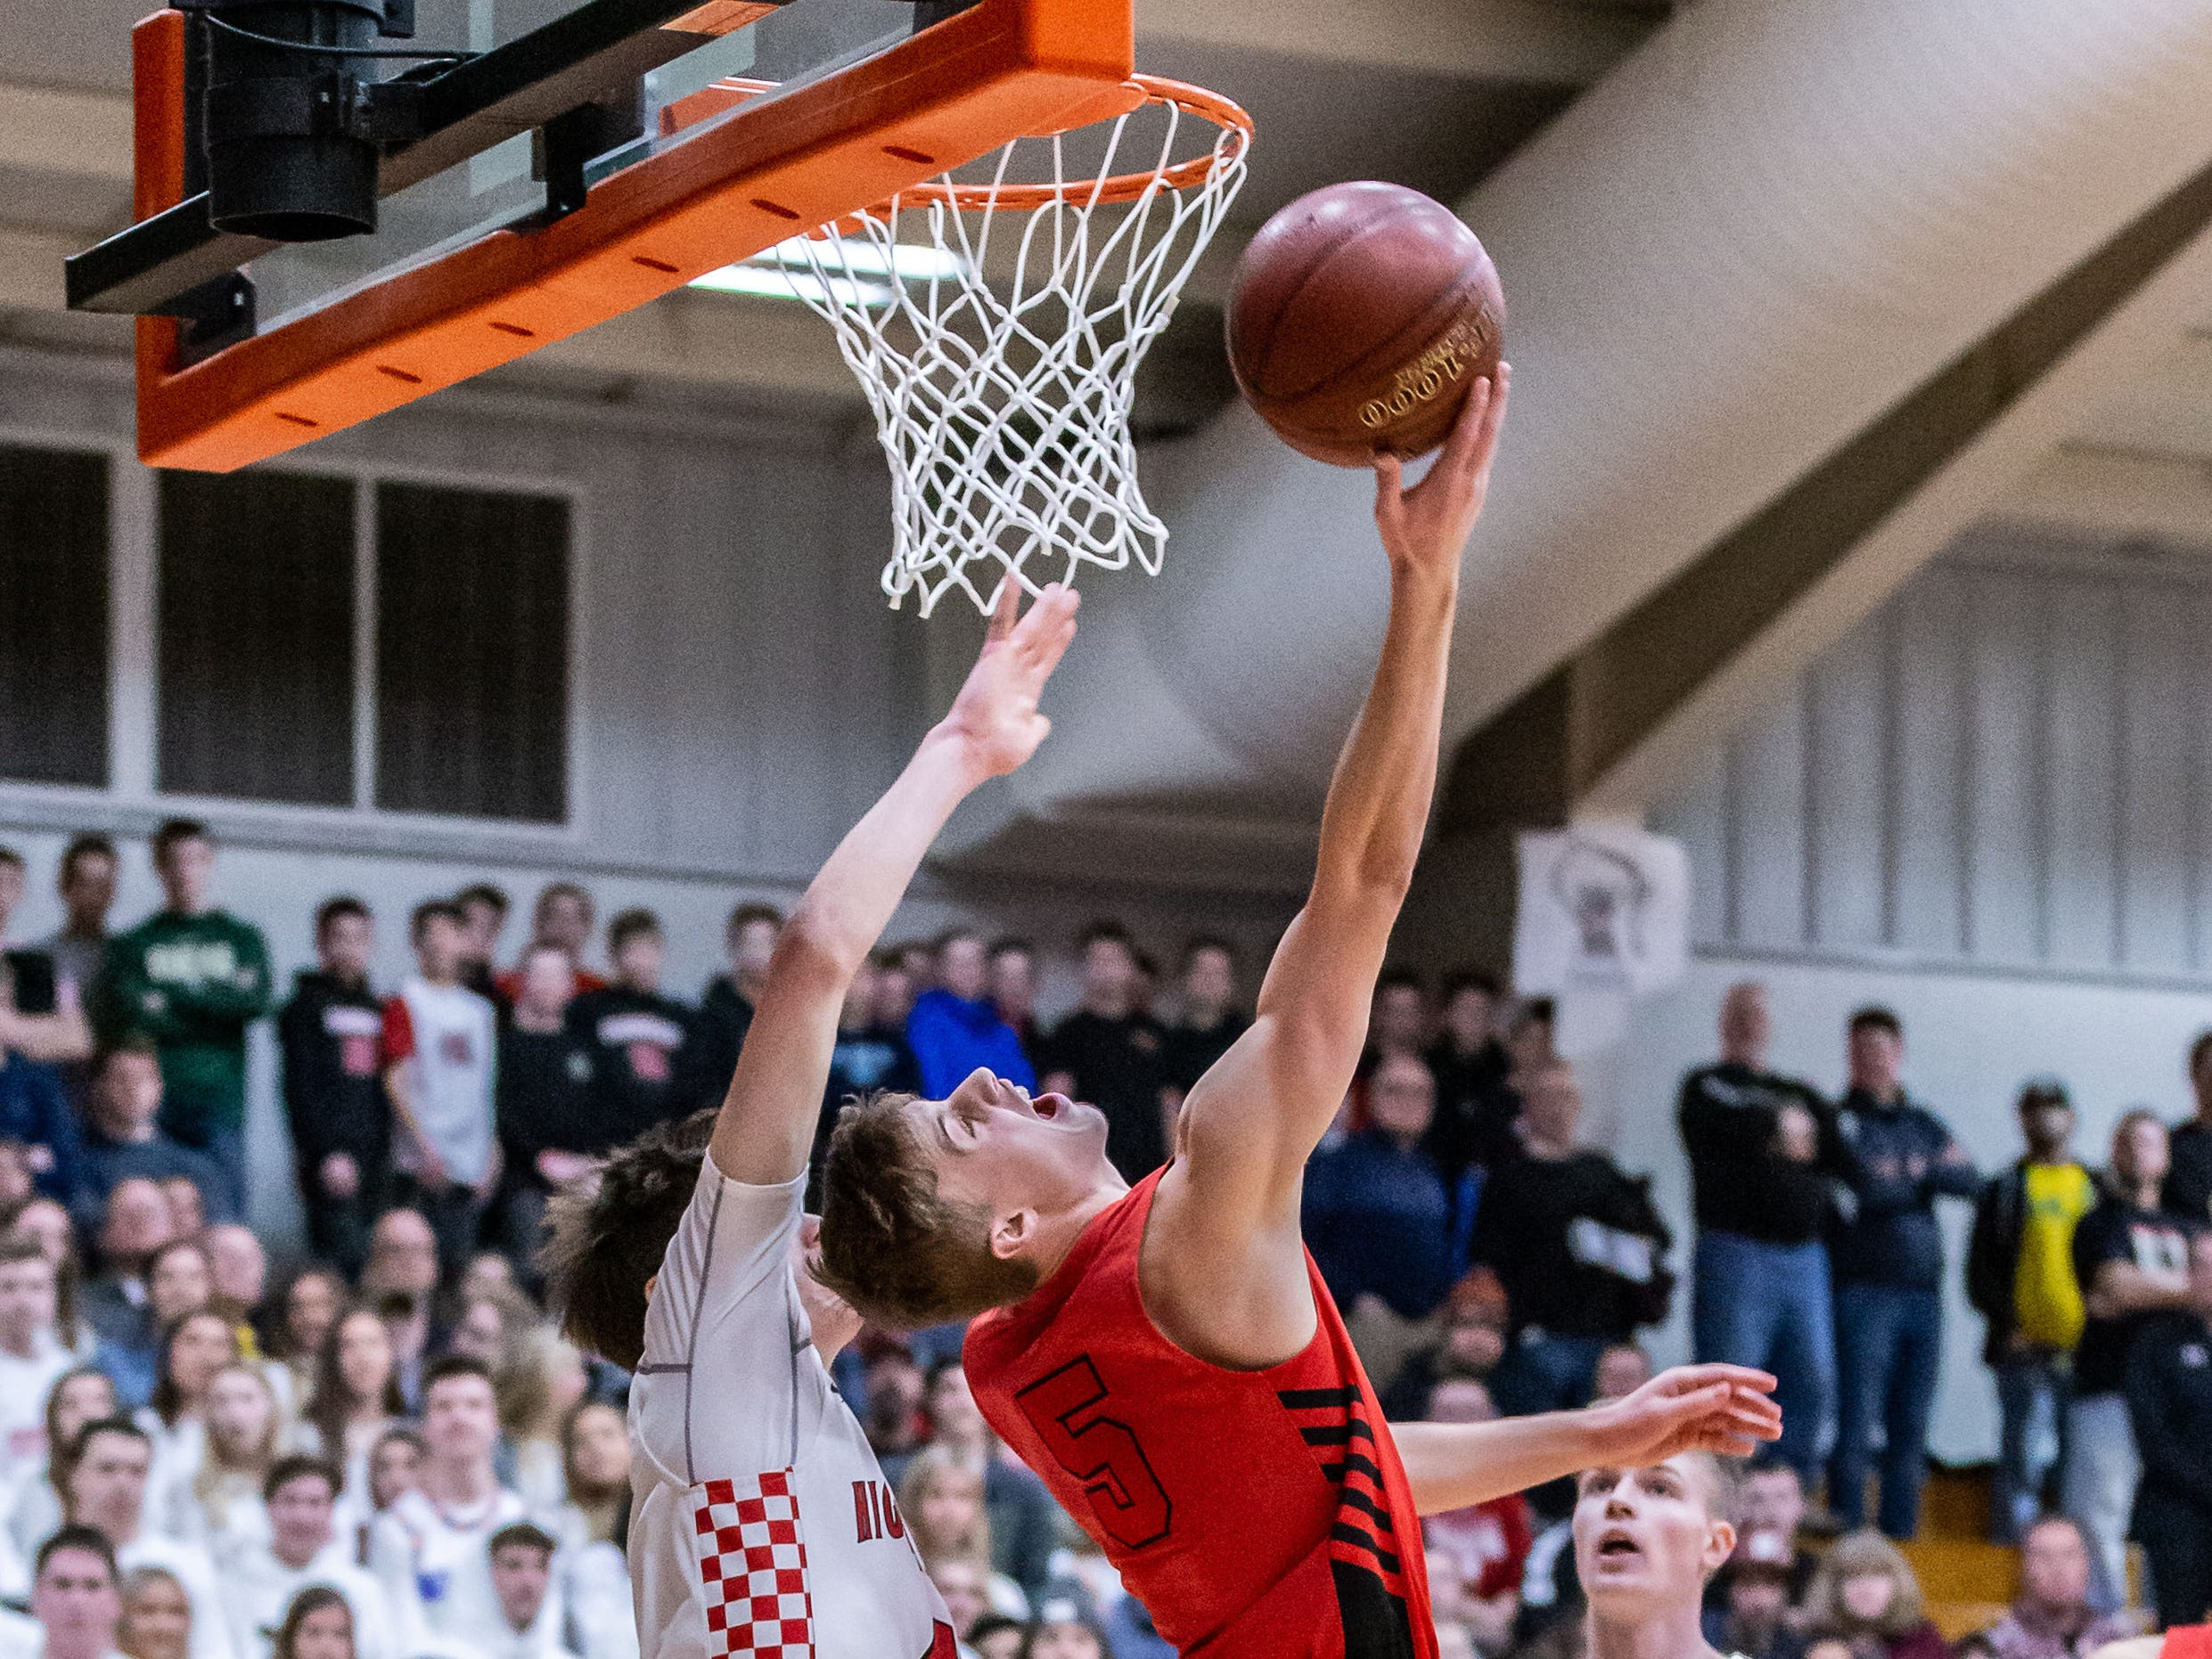 Sussex Hamilton's Carson Smith (5) gets fouled on a reverse layup during the sectional semifinal against Homestead at Hartford on Thursday, March 7, 2019.